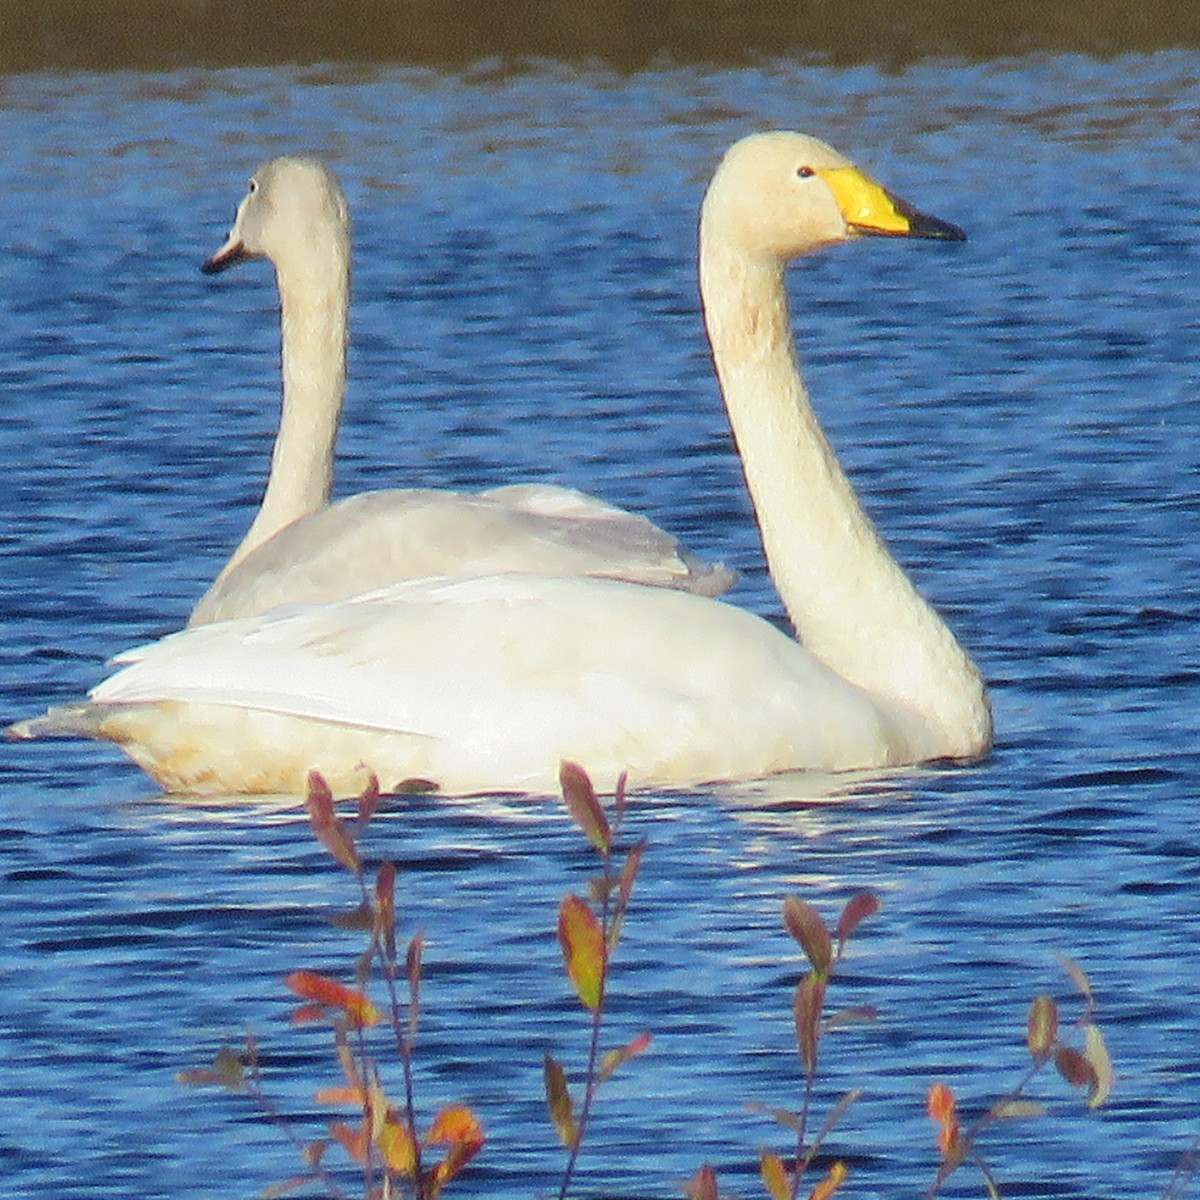 Whooper swans on Chat Moss, Irlam, UK